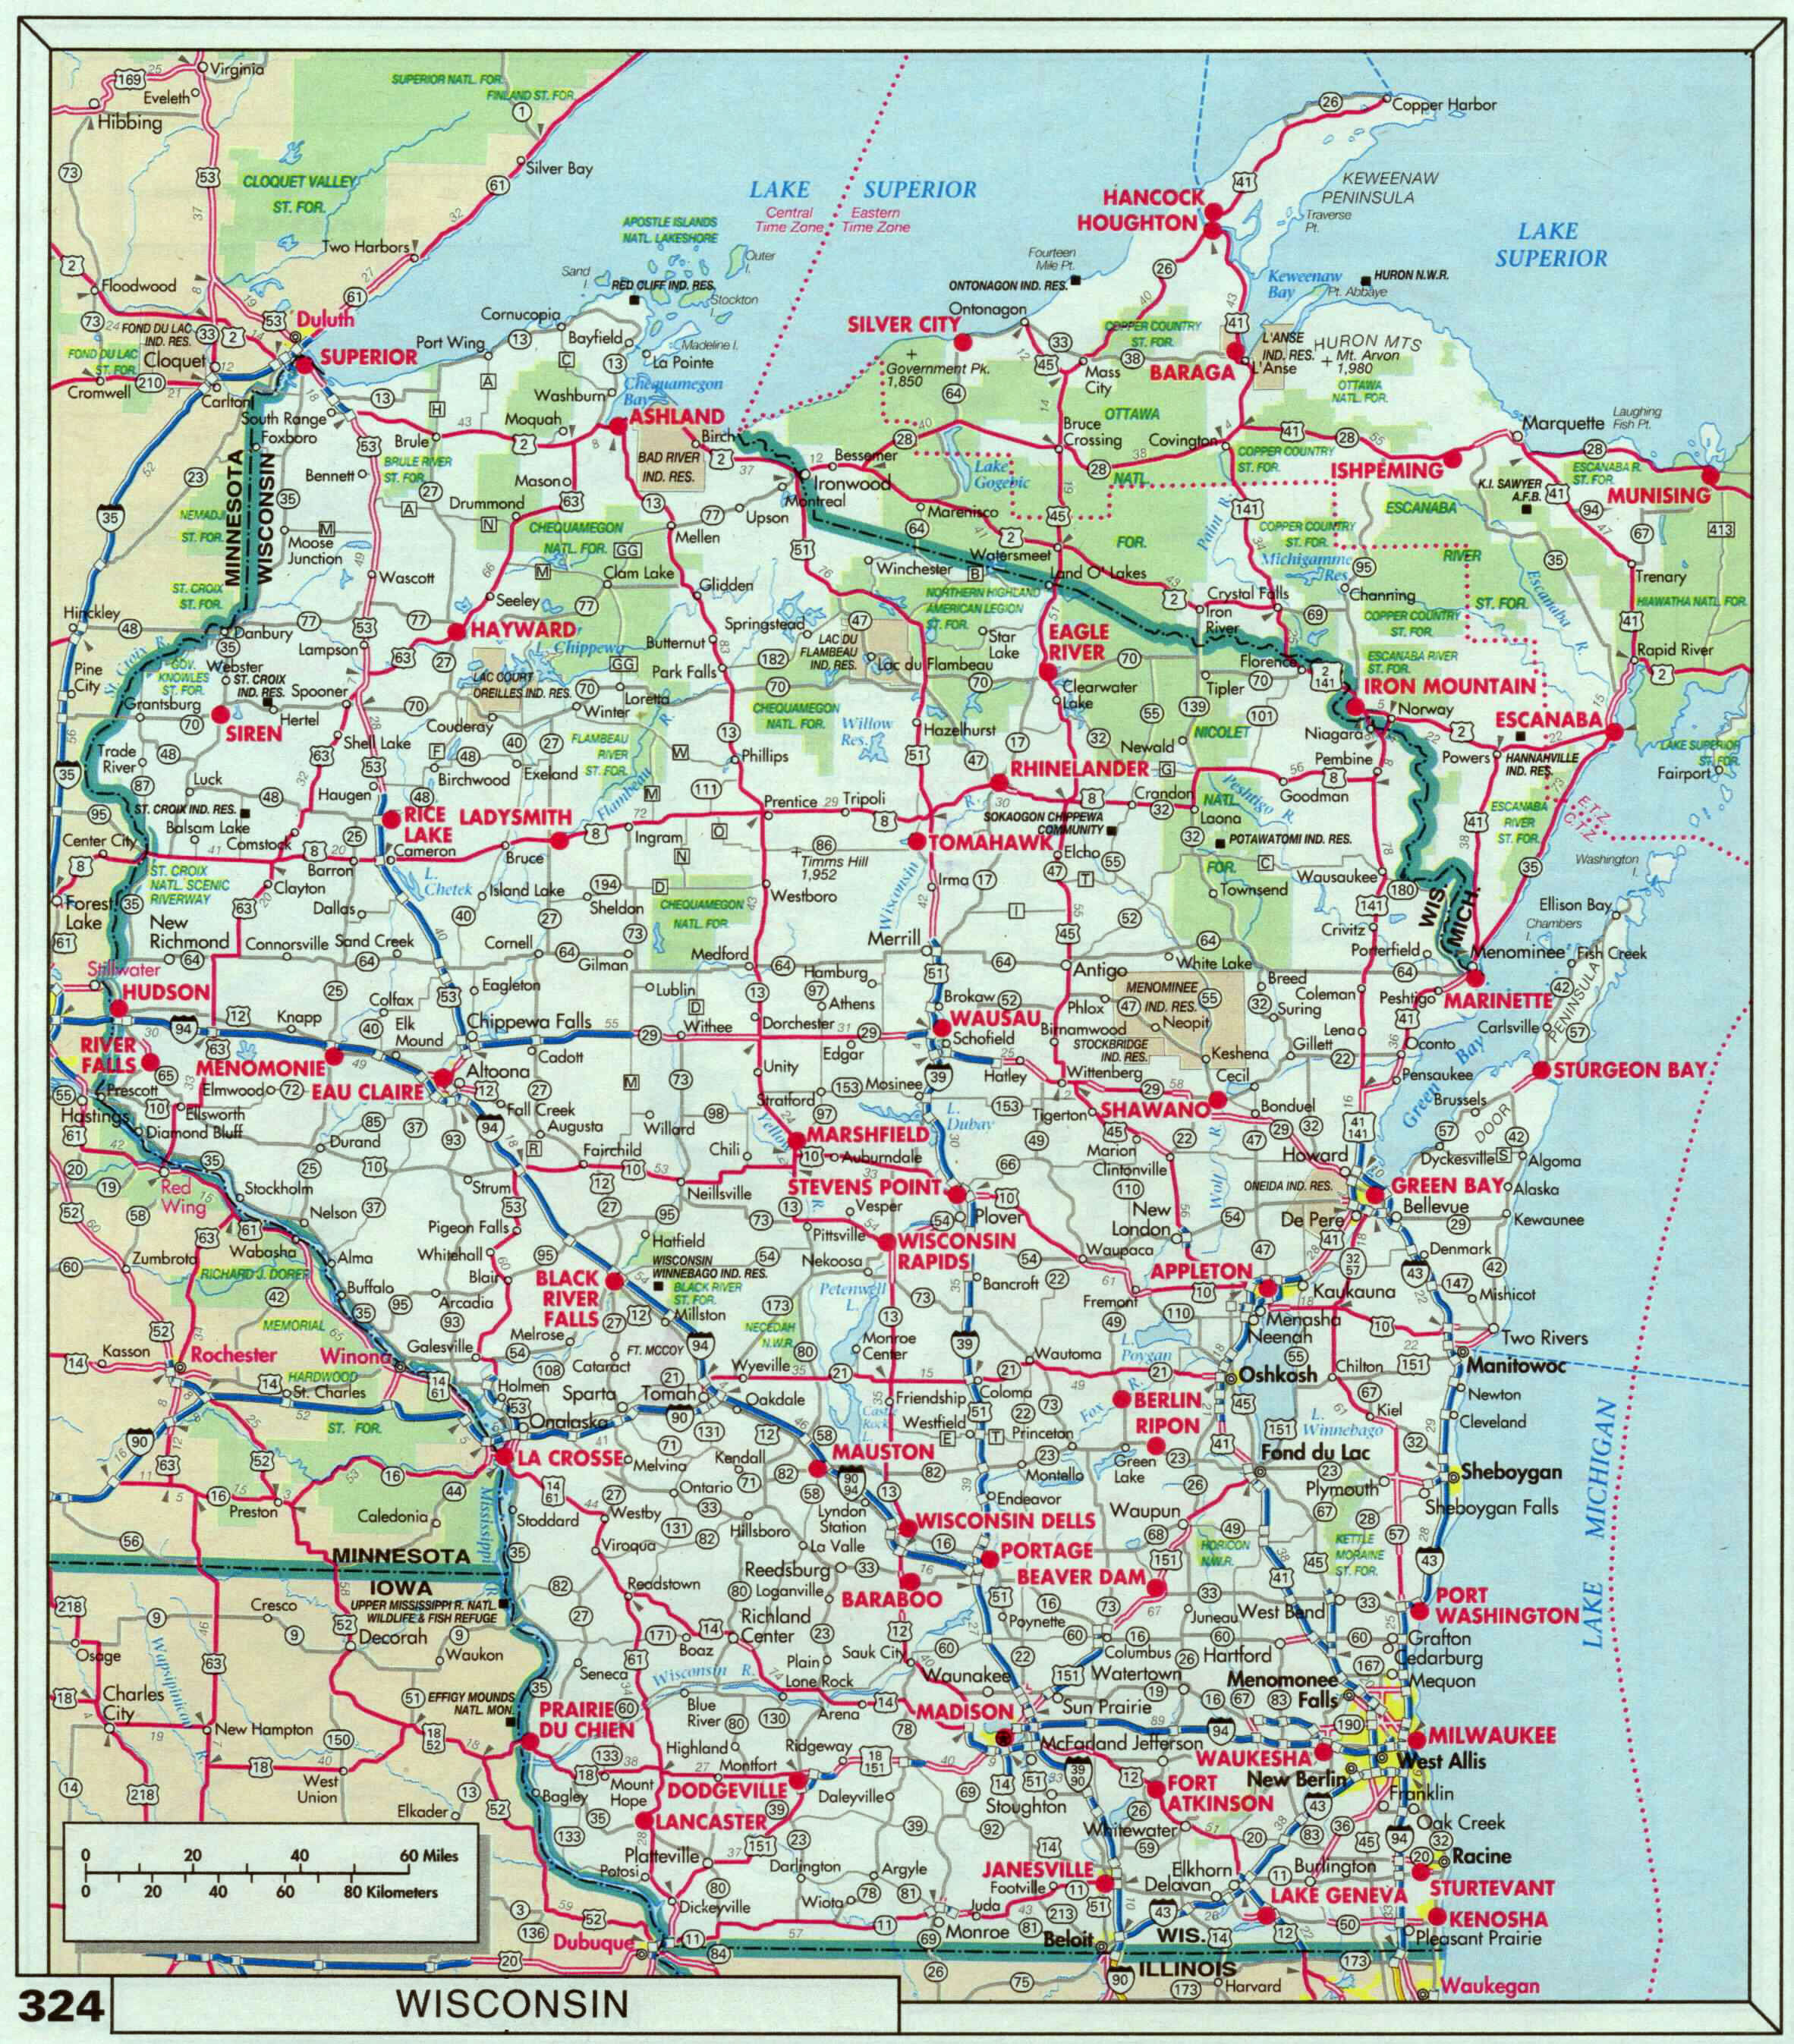 Large roads and highways map of Wisconsin state with national parks